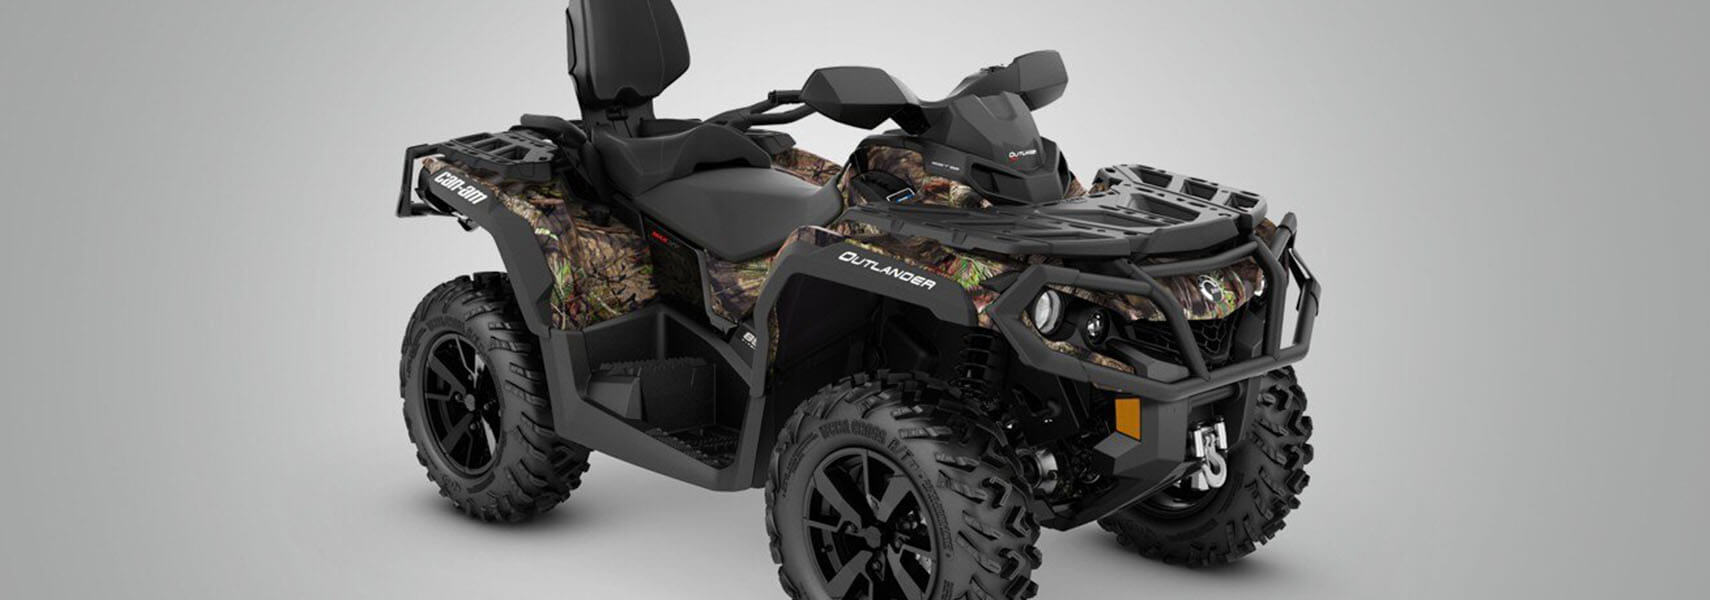 Can-Am ATV - 2020 OUTLANDER MAX XT 650 T